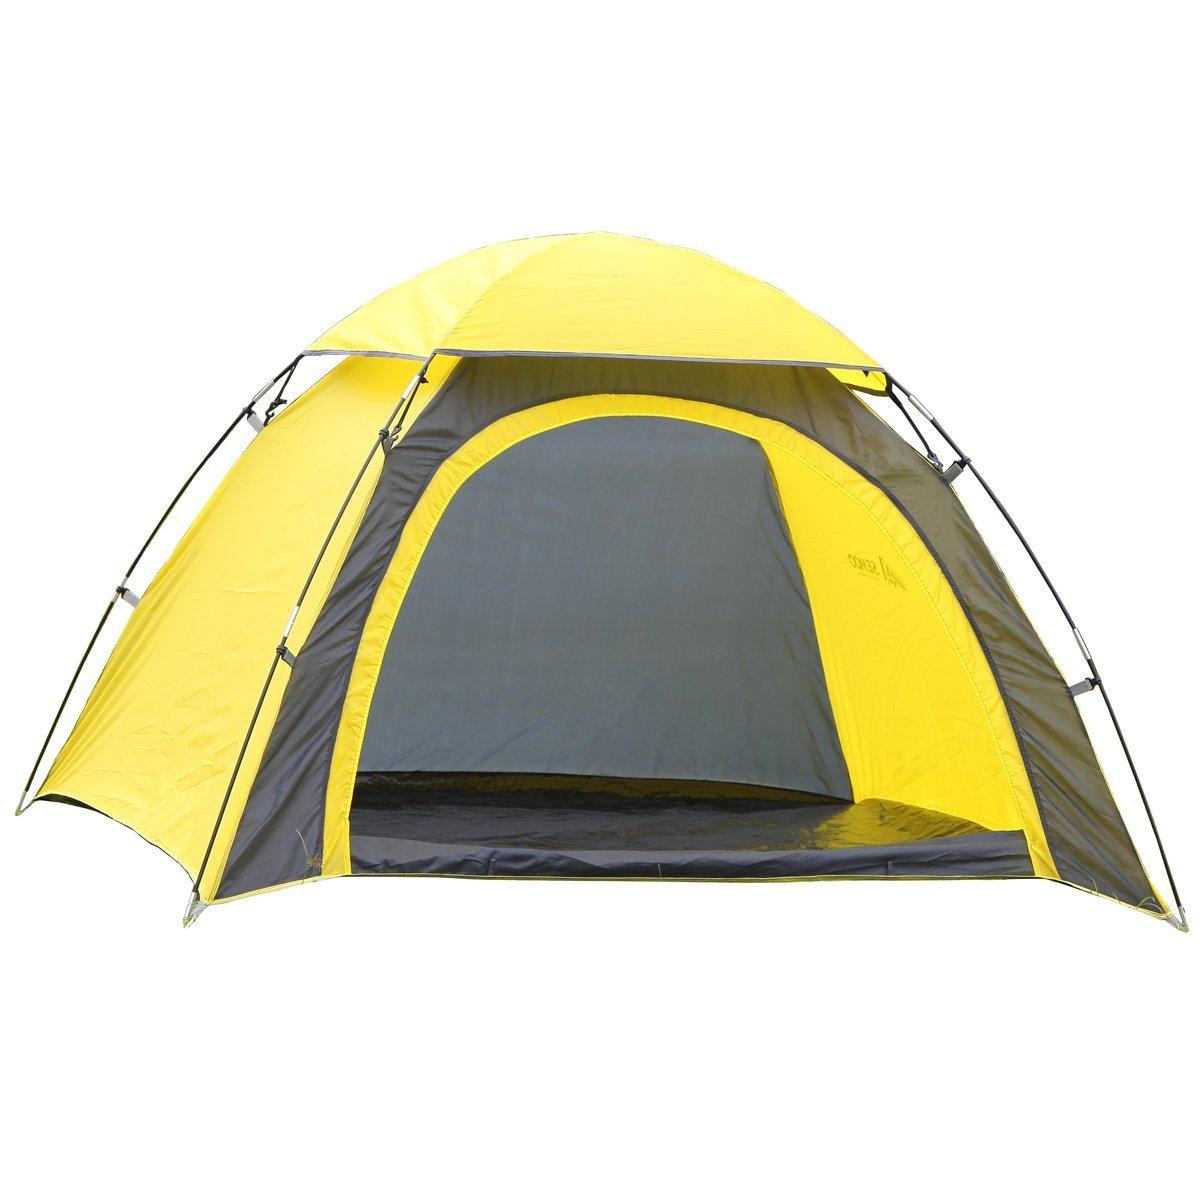 Semoo Half-Moon Style Door, 3-Person Lightweight Camping/Traveling Family Dome Tent with Compression Bag